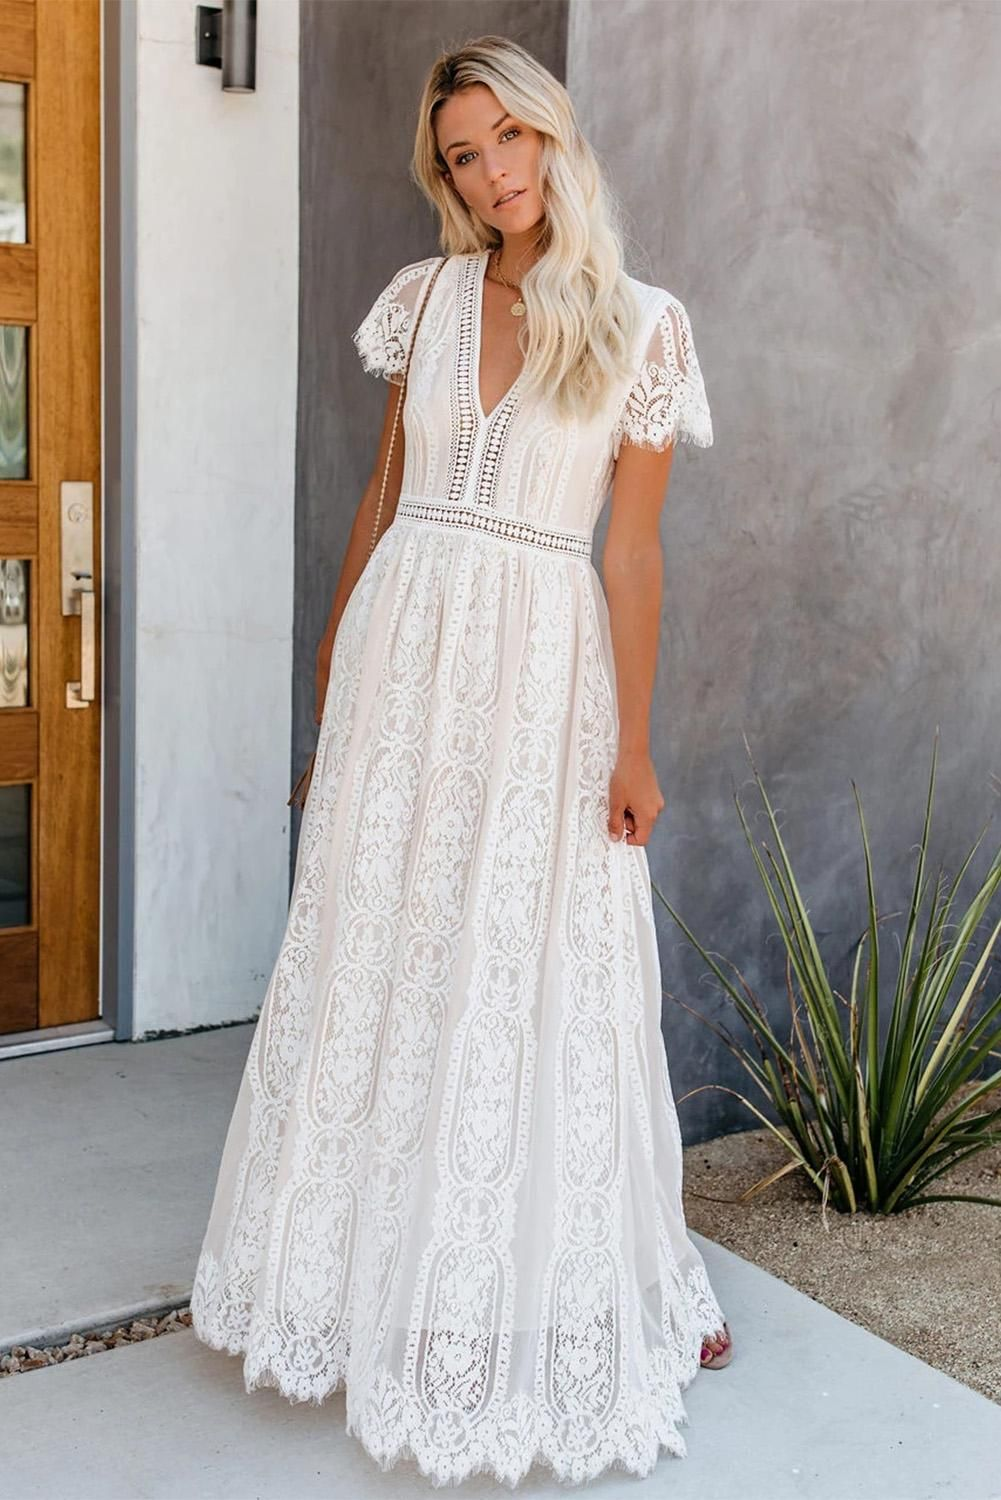 White Heart Fill Your Lace Maxi Dress White Lace Maxi Dress Lace White Dress Lace Maxi Dress [ 1500 x 1001 Pixel ]